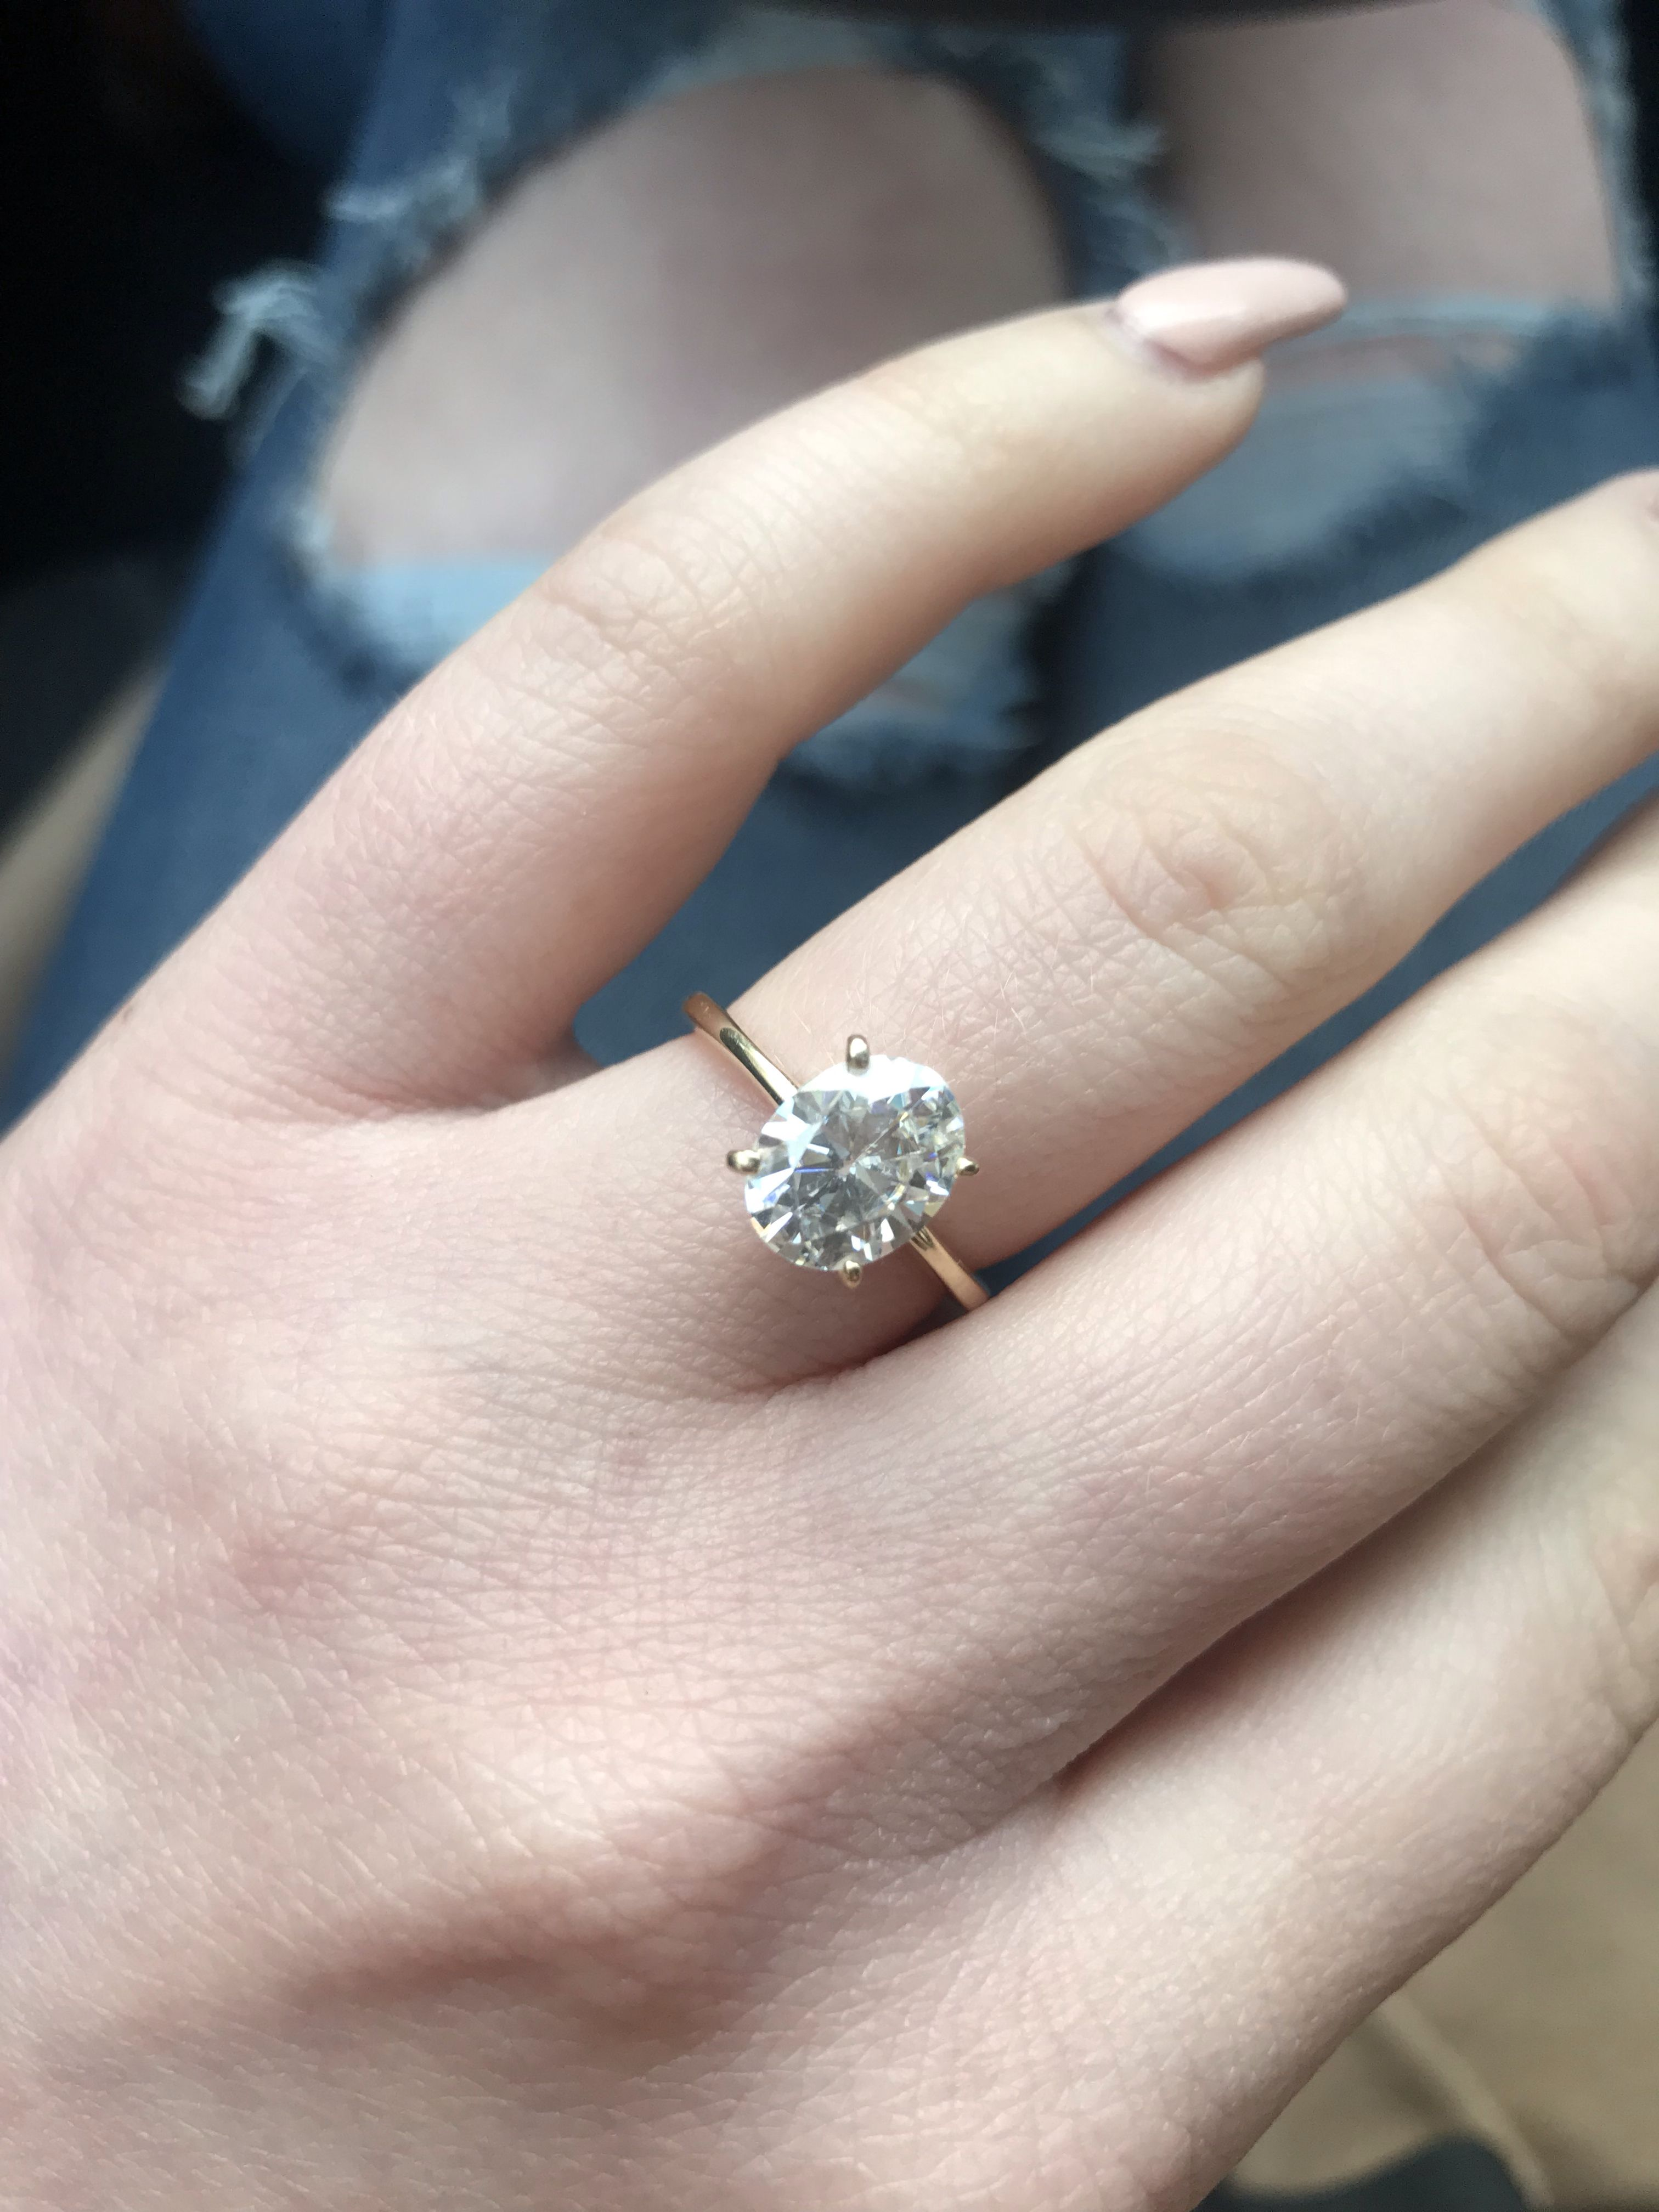 My Oval Solitaire 2 1 Carat Engagement Ring Gold Oval Engagement Ring 1 Carat Engagement Rings Oval Engagement